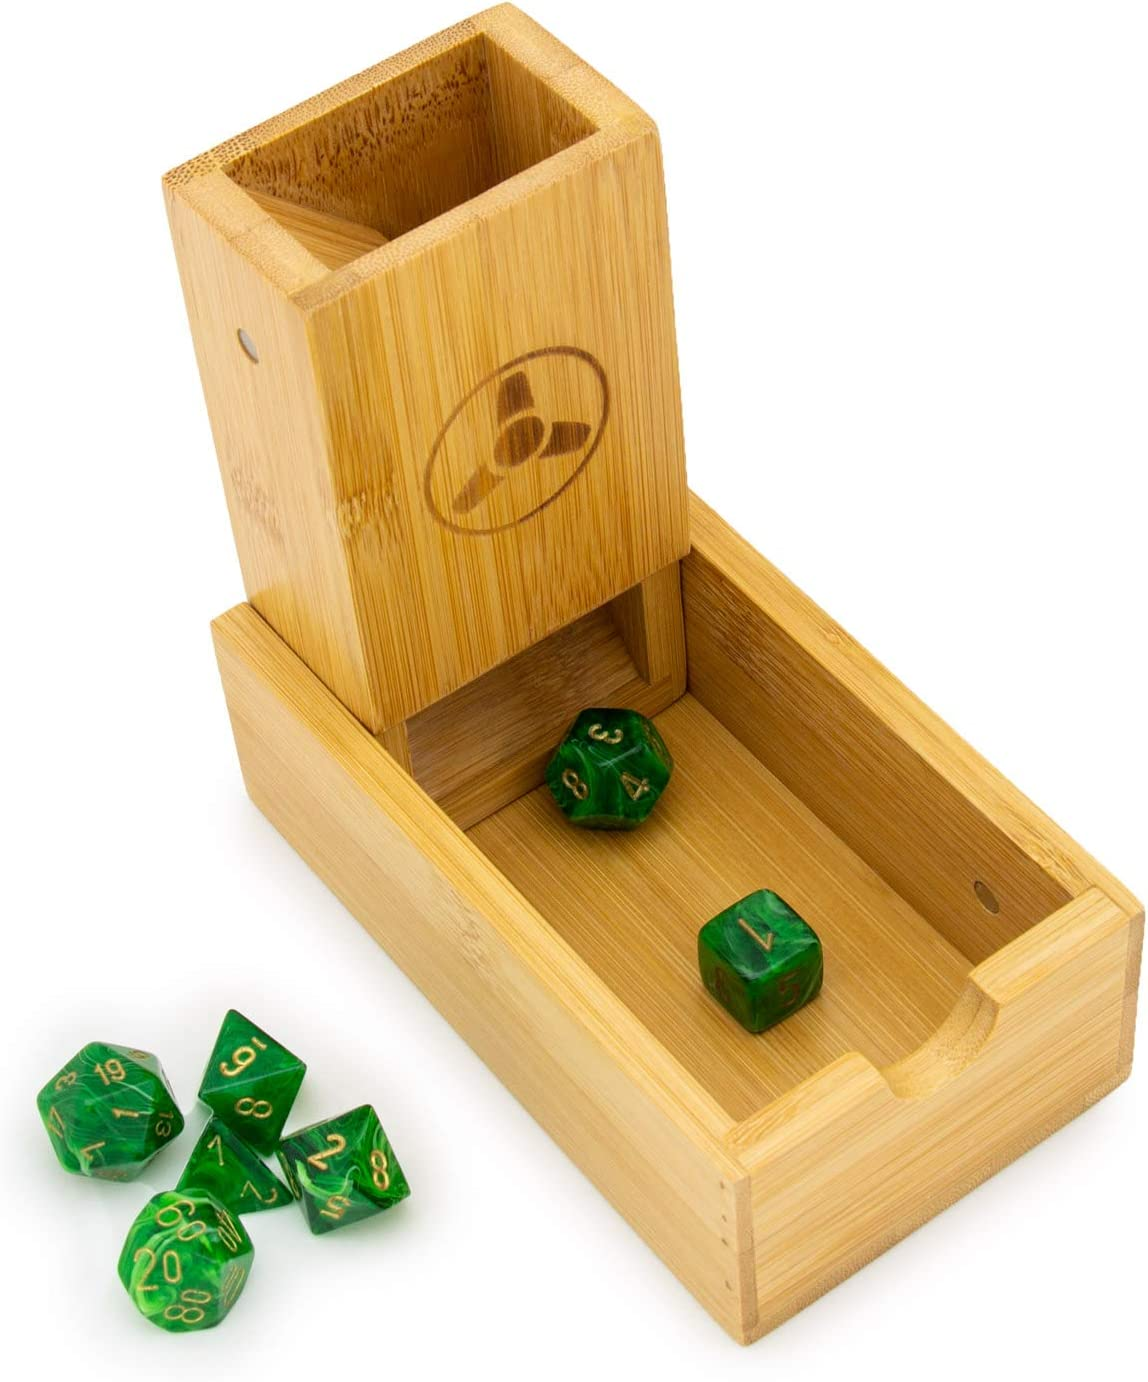 Premium Dice Rolling Tower and Tray for RPGs and Board Games Hominize Bamboo Dice Tower